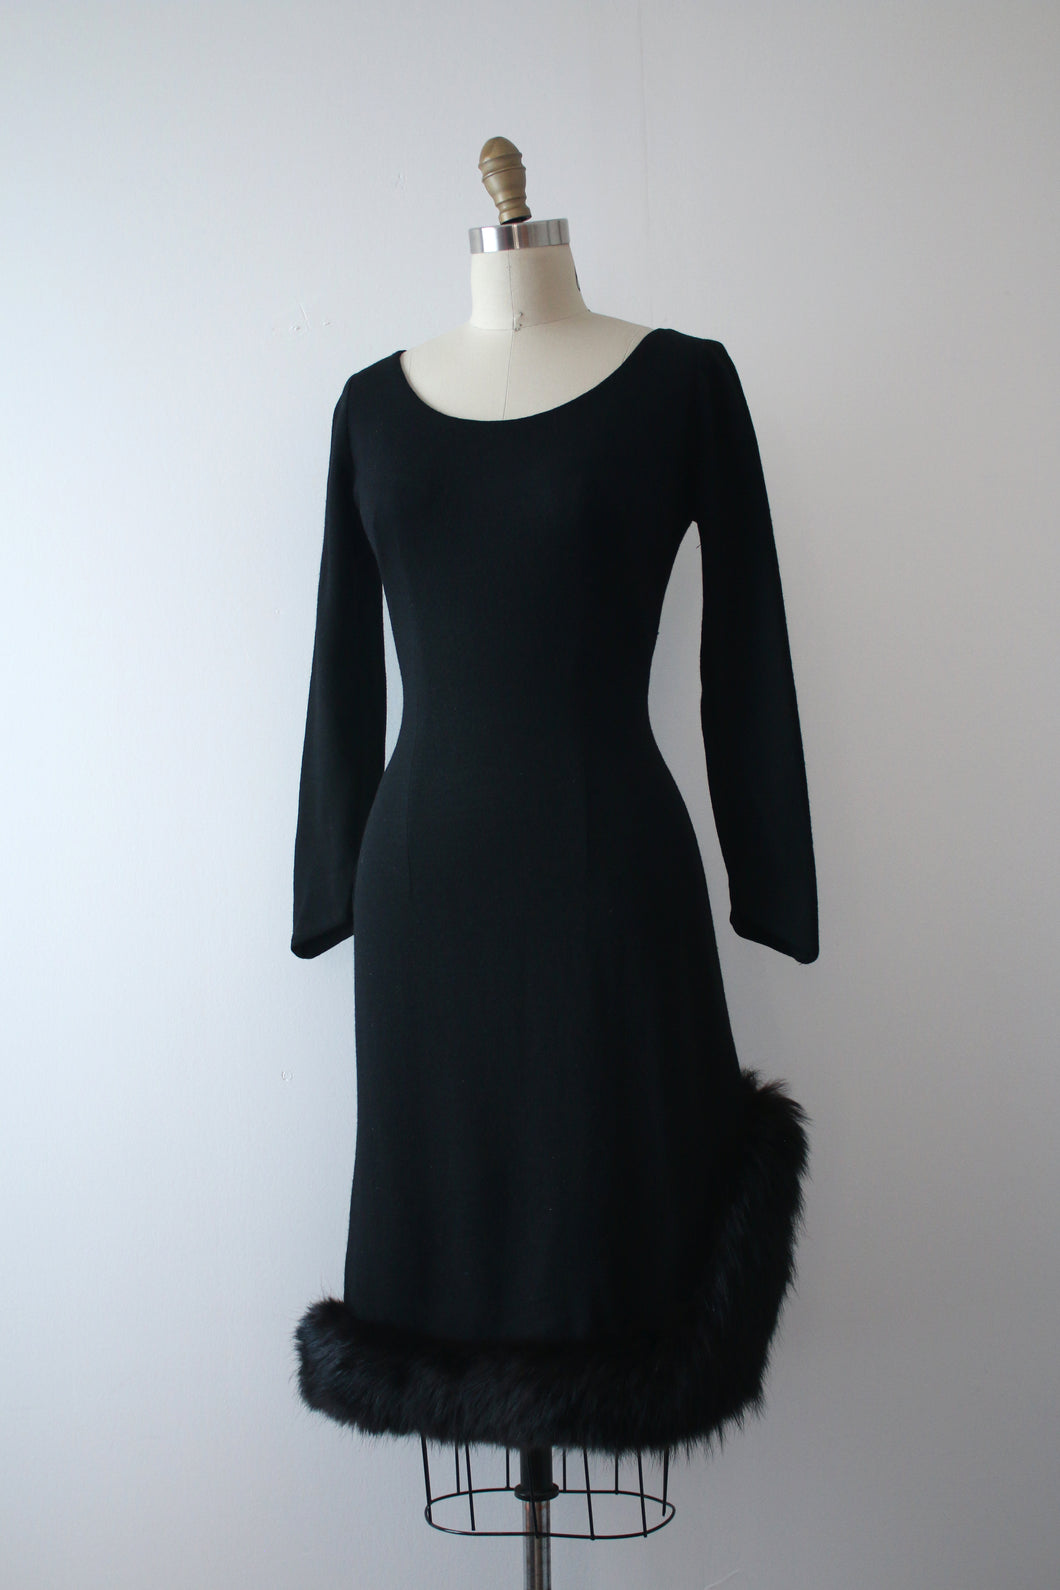 vintage 1960s black bombshell dress